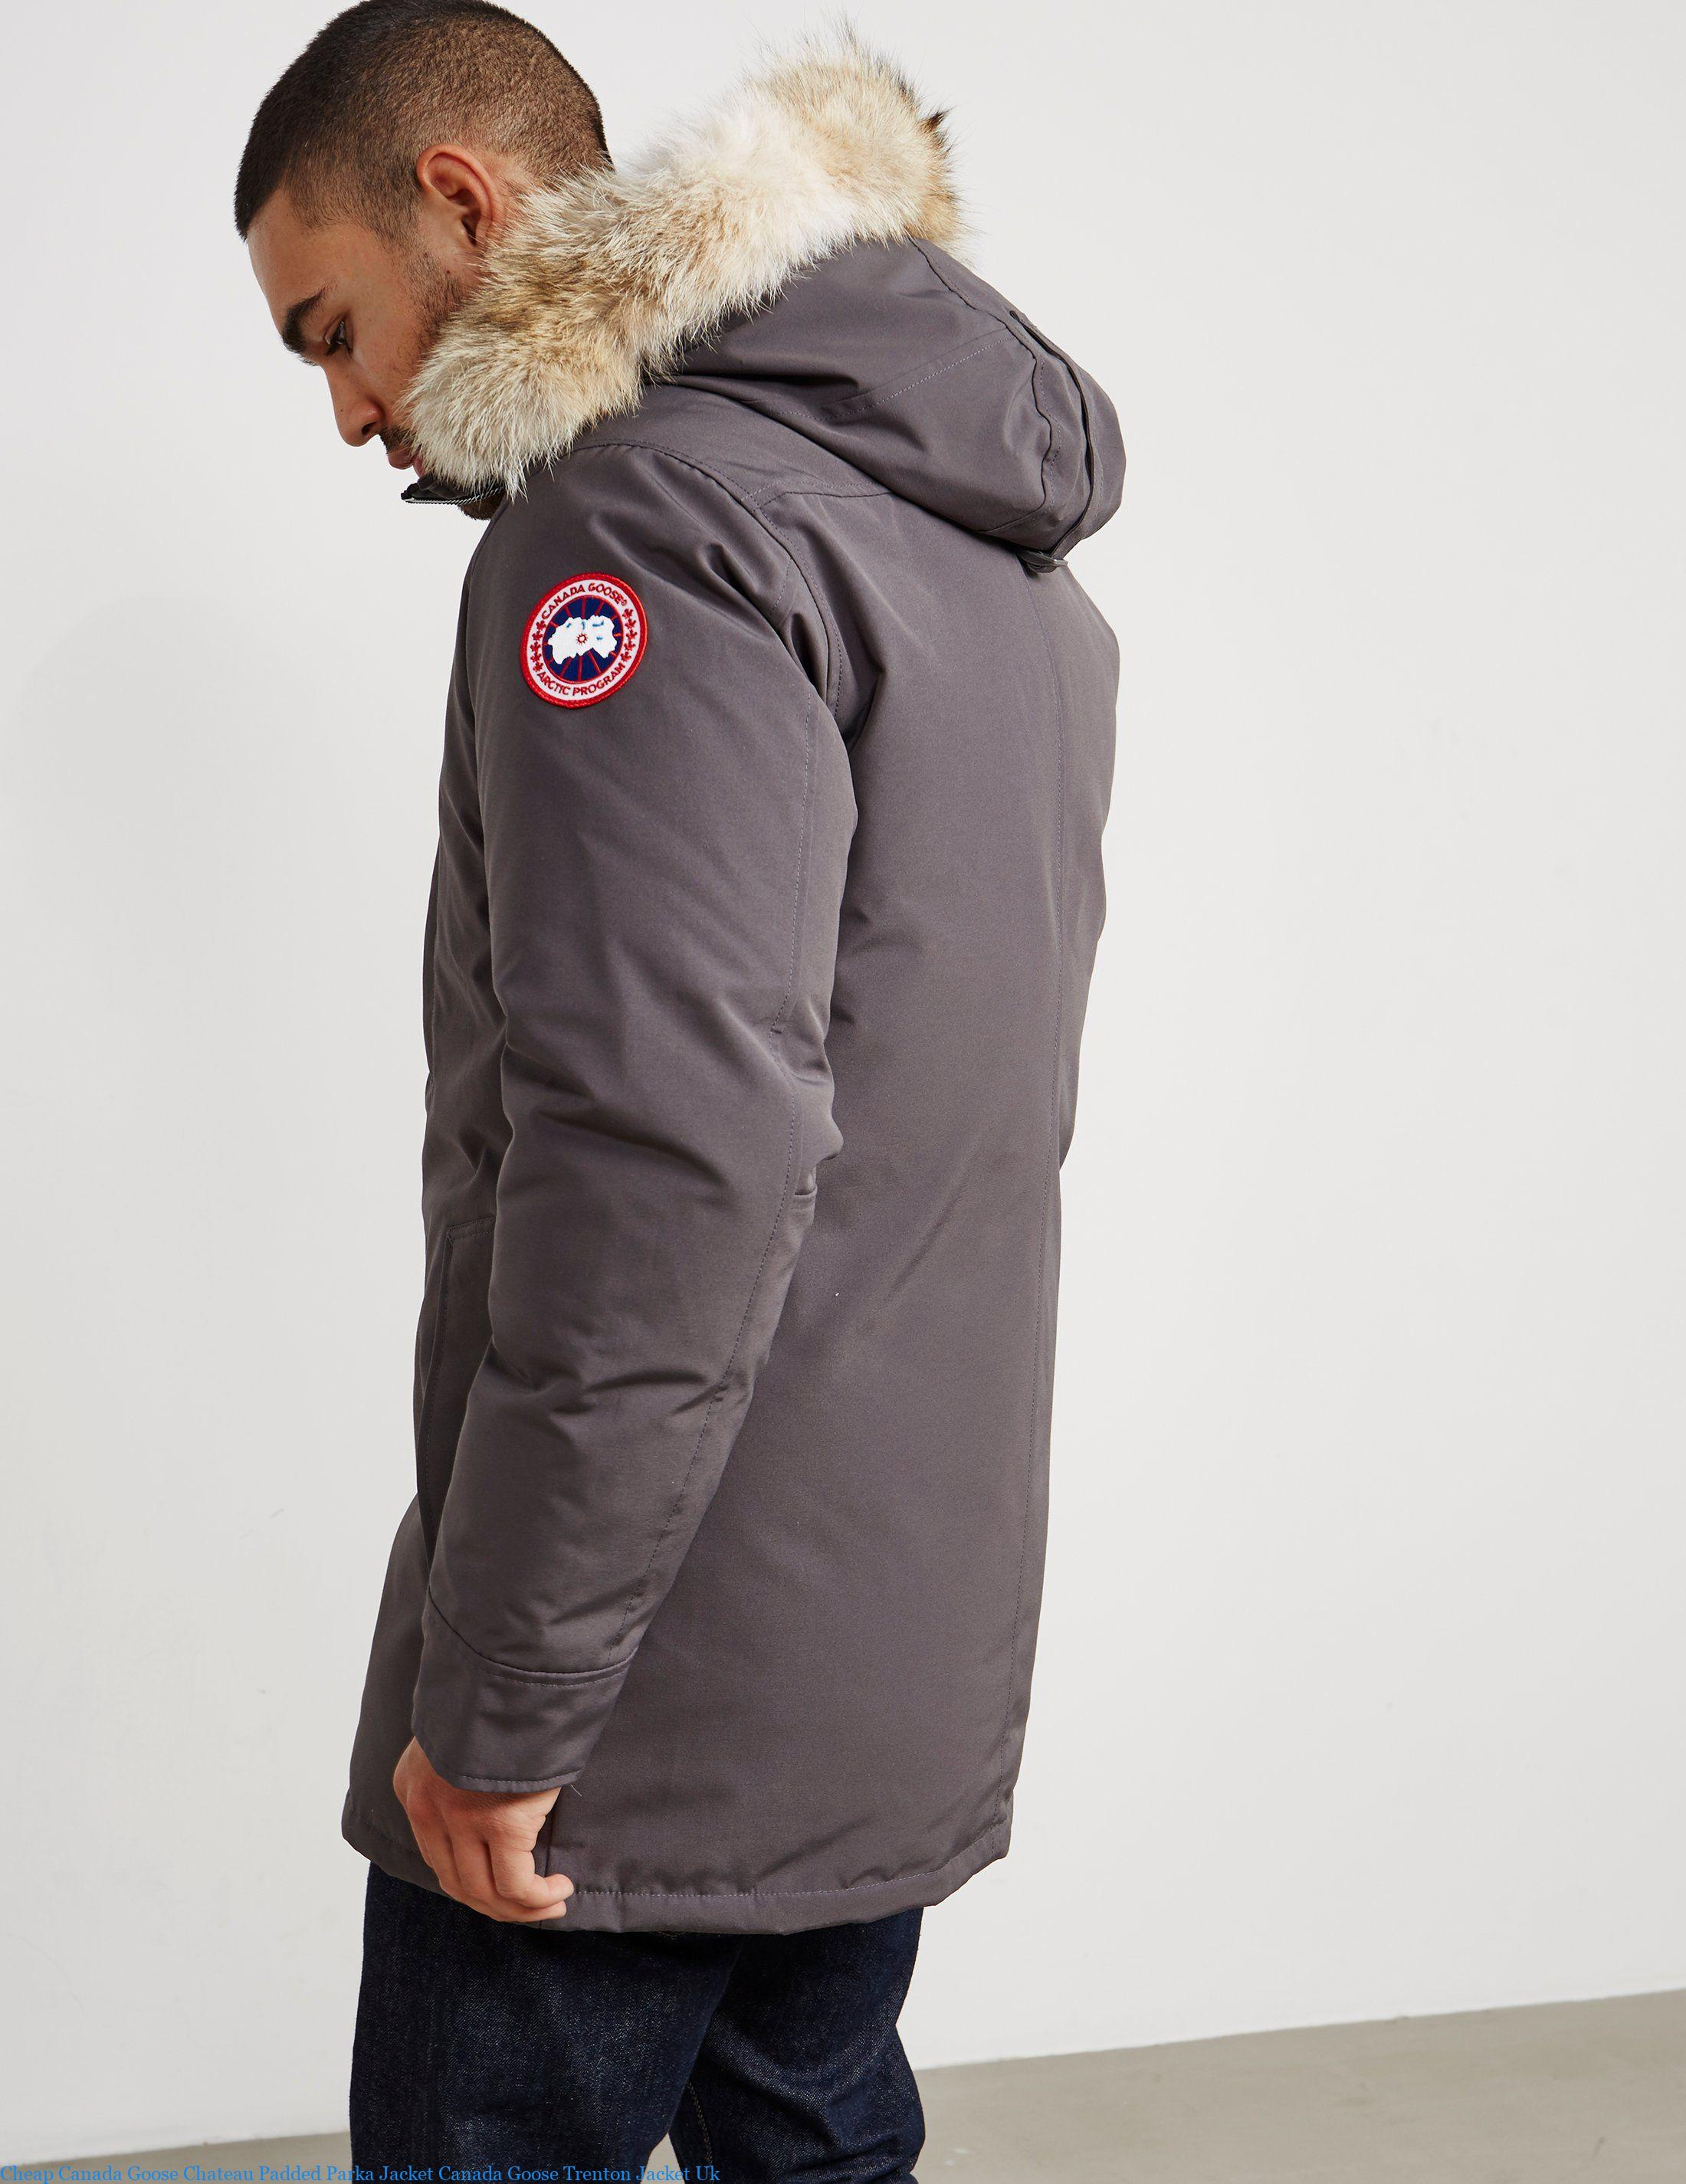 new arrival fff08 9157b Cheap Canada Goose Chateau Padded Parka Jacket Canada Goose Trenton Jacket  Uk